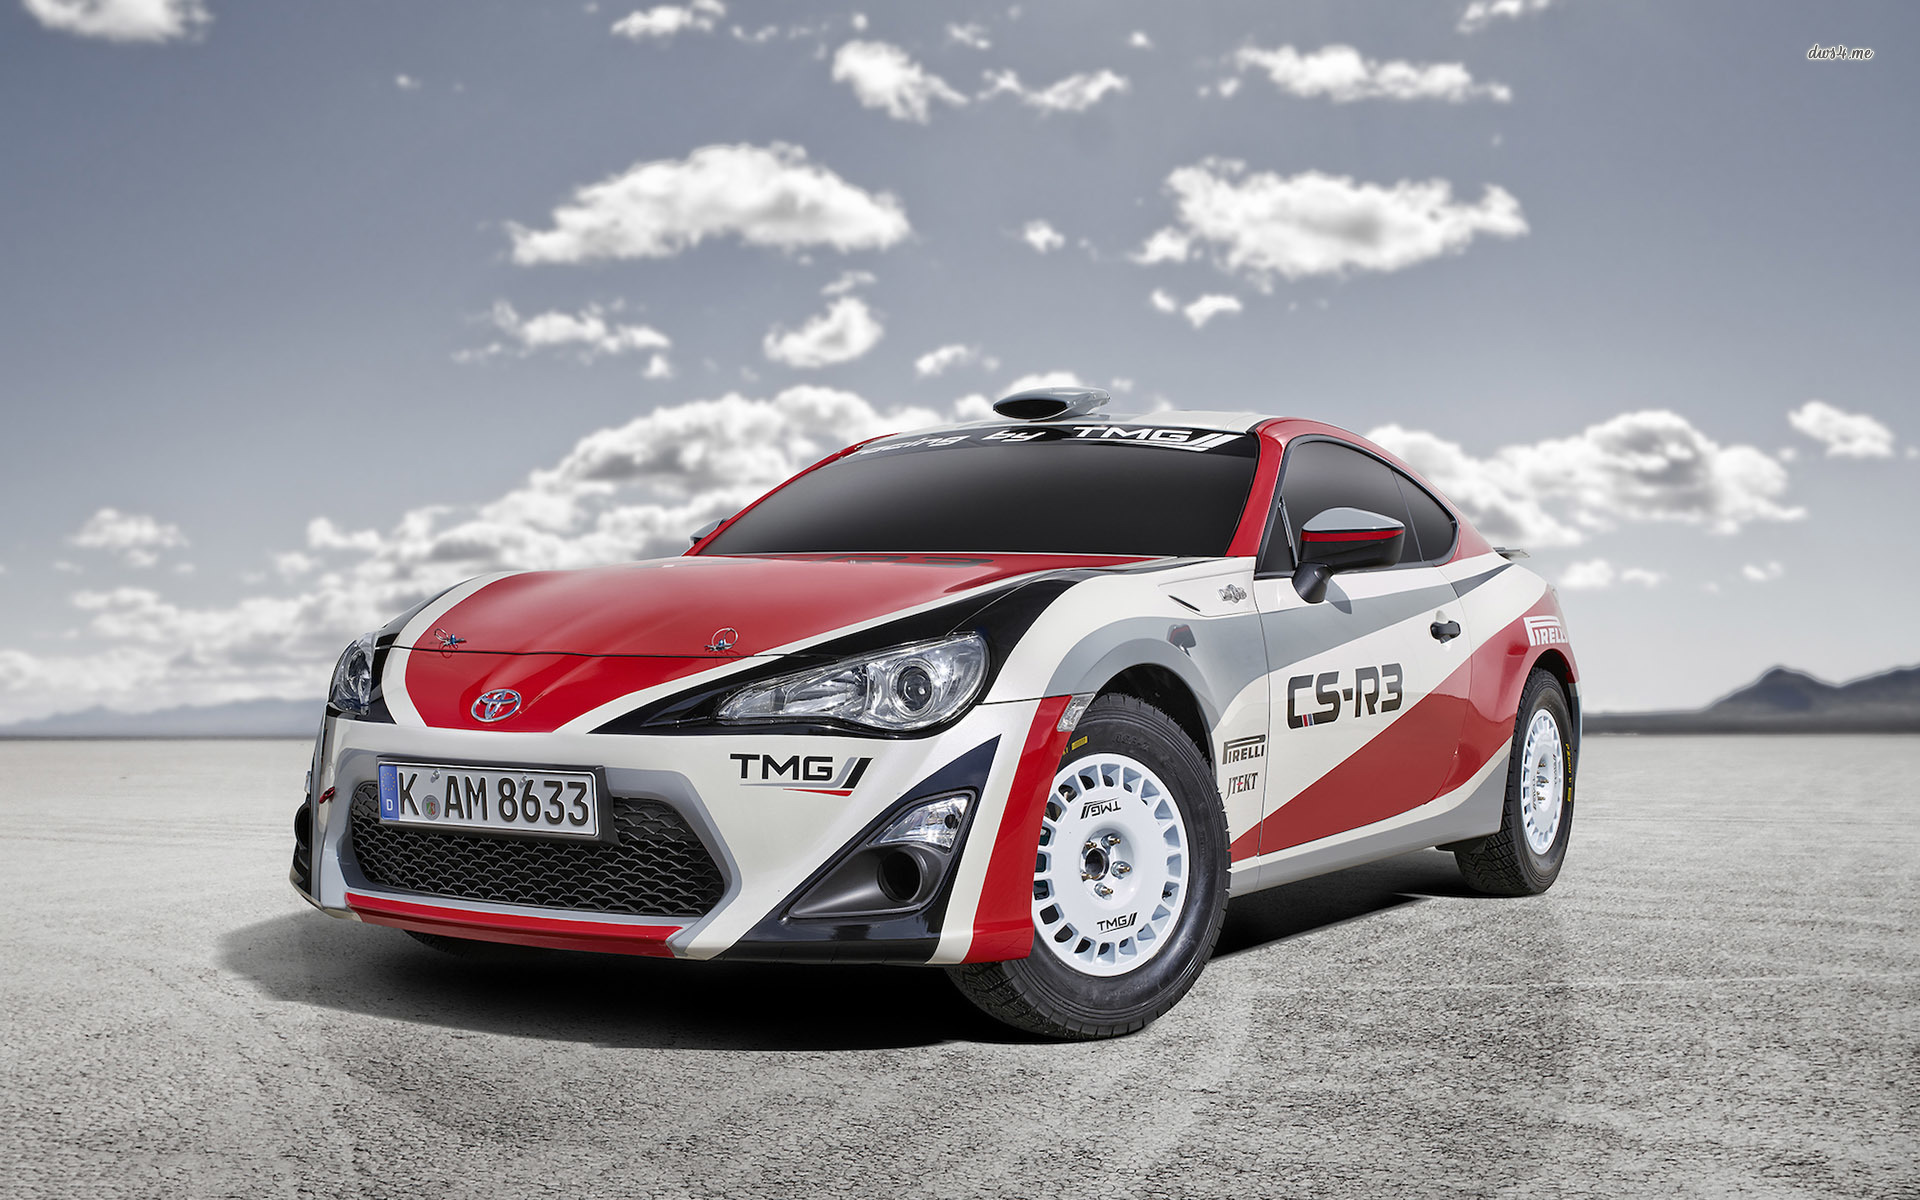 2015 Rally Toyota Gt86 Cs-r3 Wallpaper - Toyota 86 , HD Wallpaper & Backgrounds